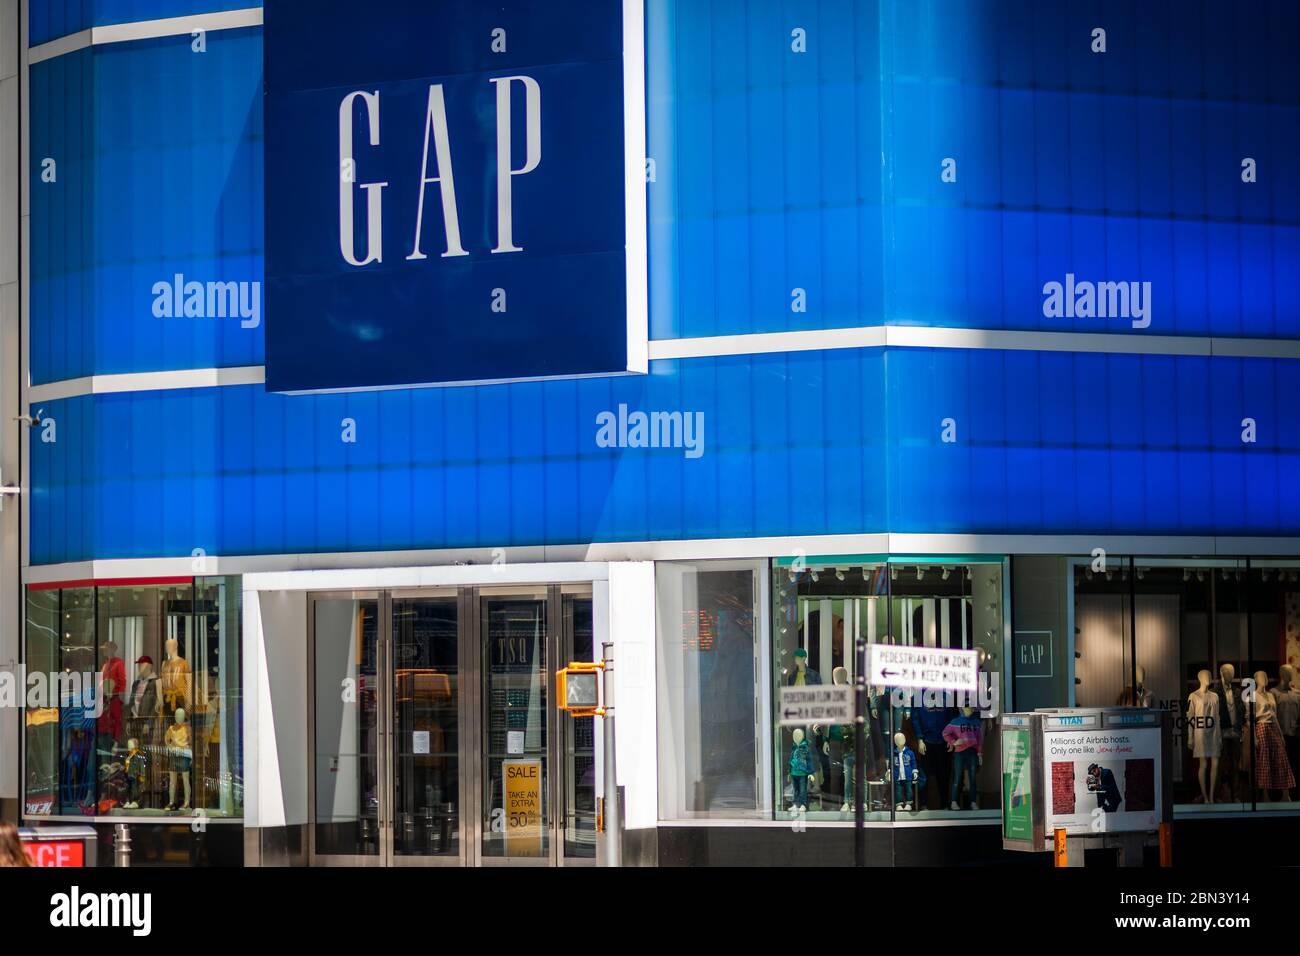 The closed Gap store in Times Square in New York on Thursday, May 7, 2020. The Gap announced that it plans to open up to 800 of its closed stores by the end of May. (© Richard B. Levine) Stock Photo